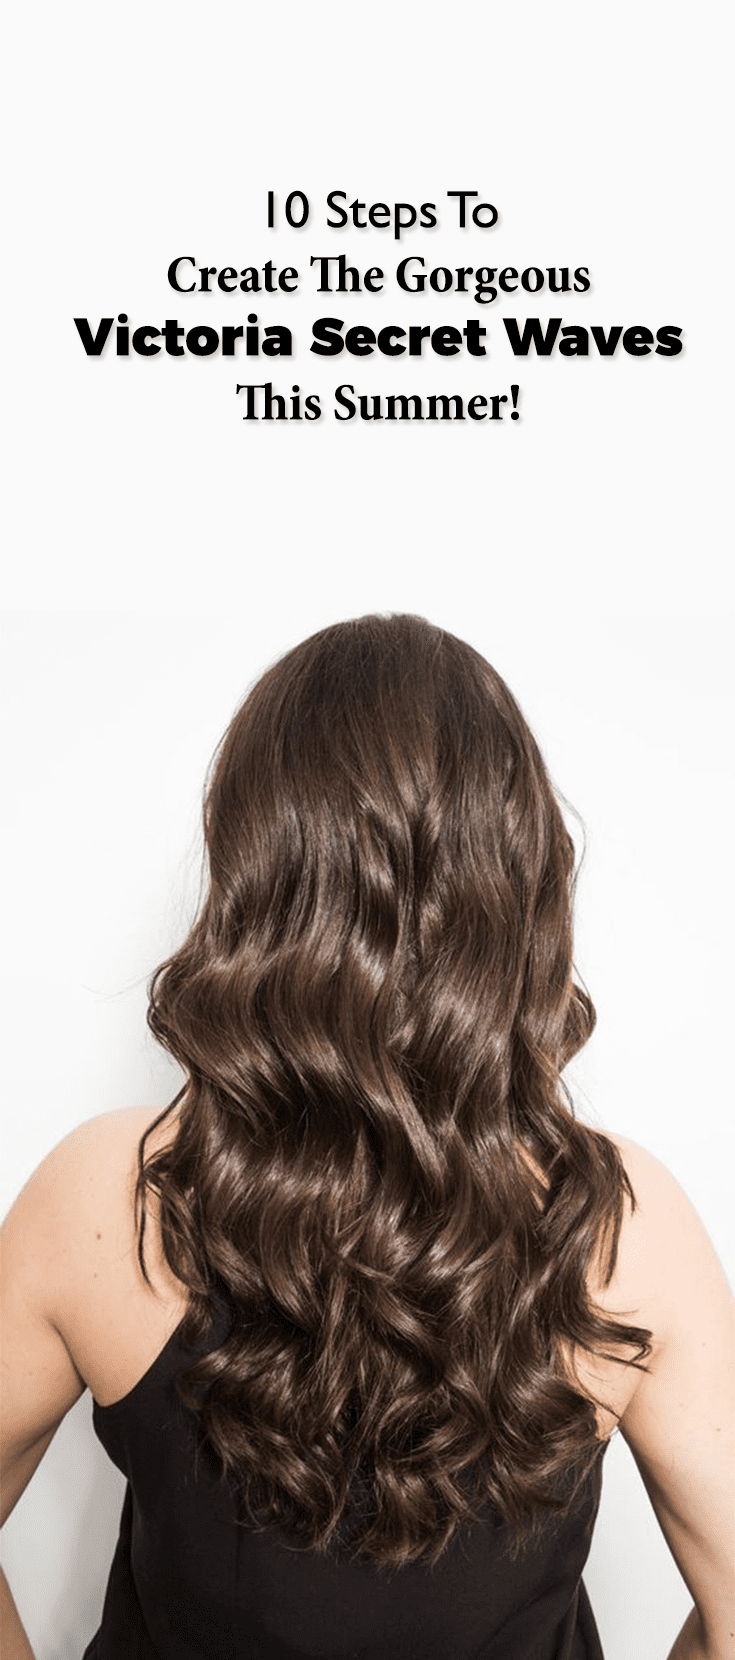 10 Steps To Create The Gorgeous Victoria Secret Waves This Summer!